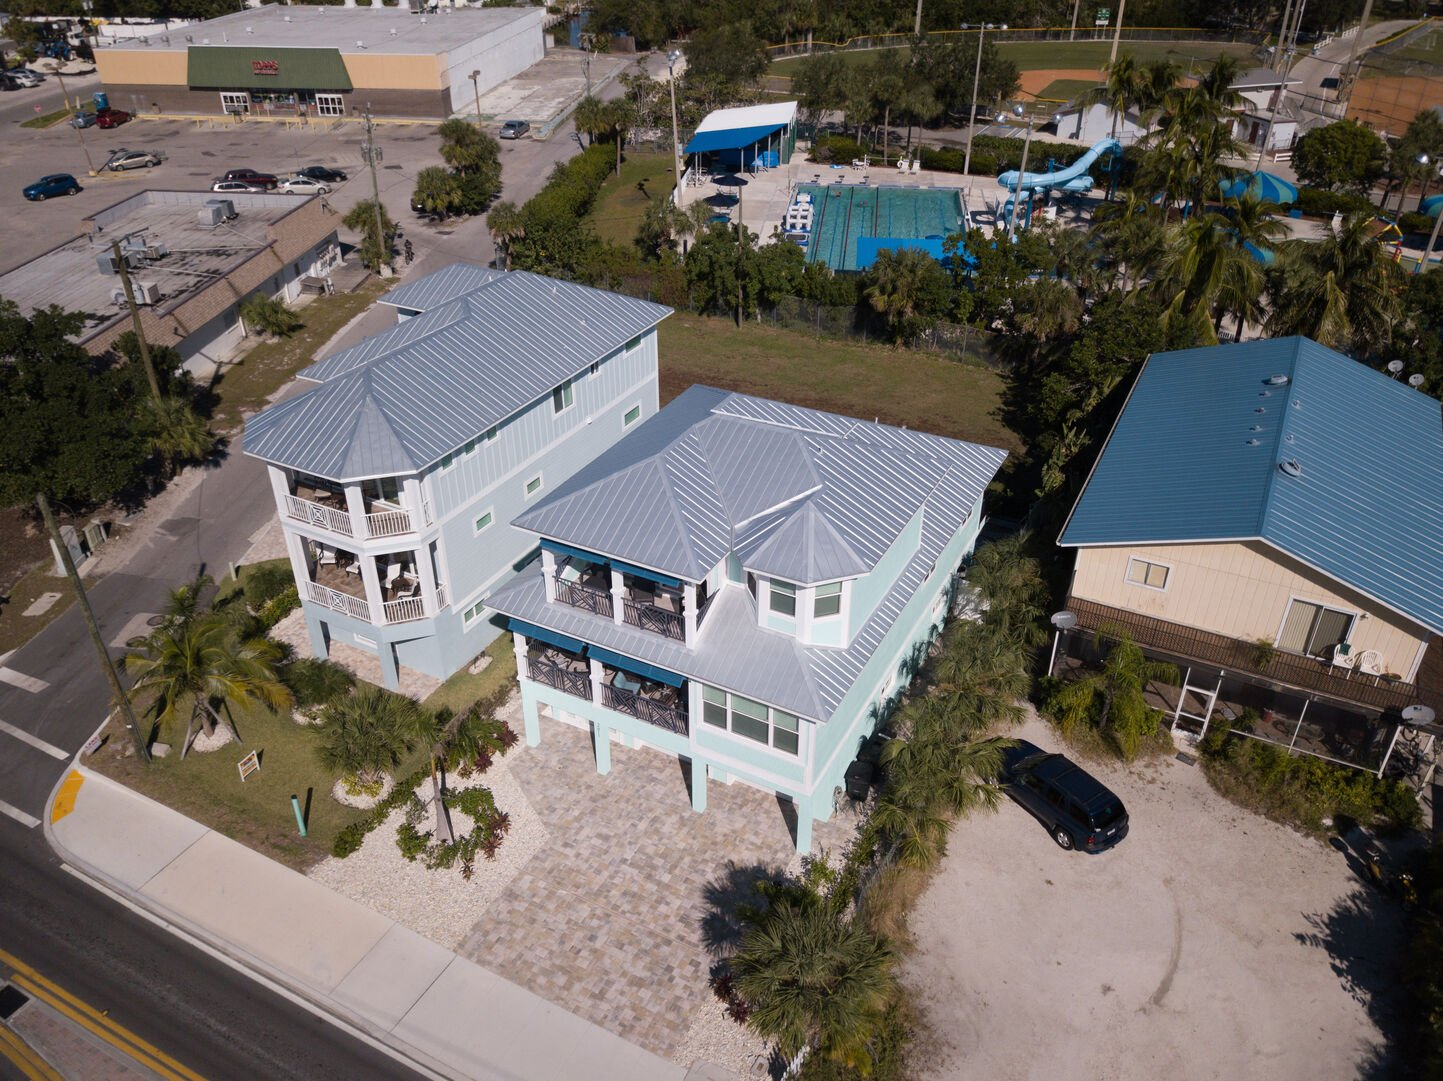 Aerial view of this vacation rental Fort Myers Beach Florida